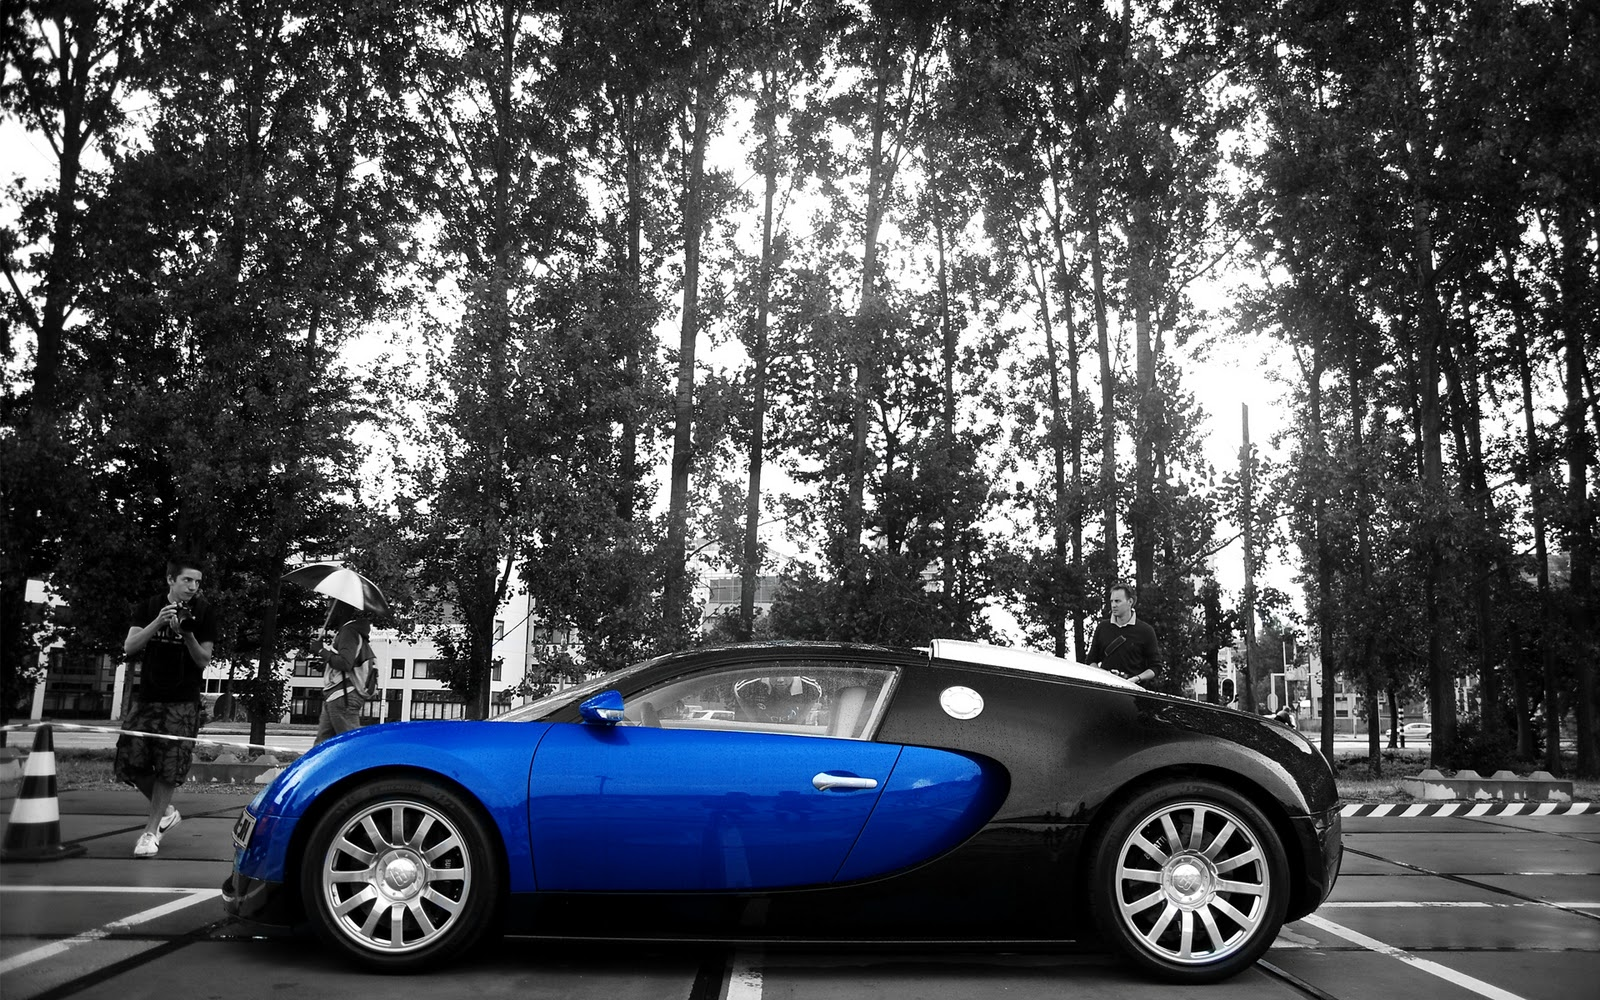 bugatti veyron w16 speed supercar wallpapers hd the wallpaper database. Black Bedroom Furniture Sets. Home Design Ideas